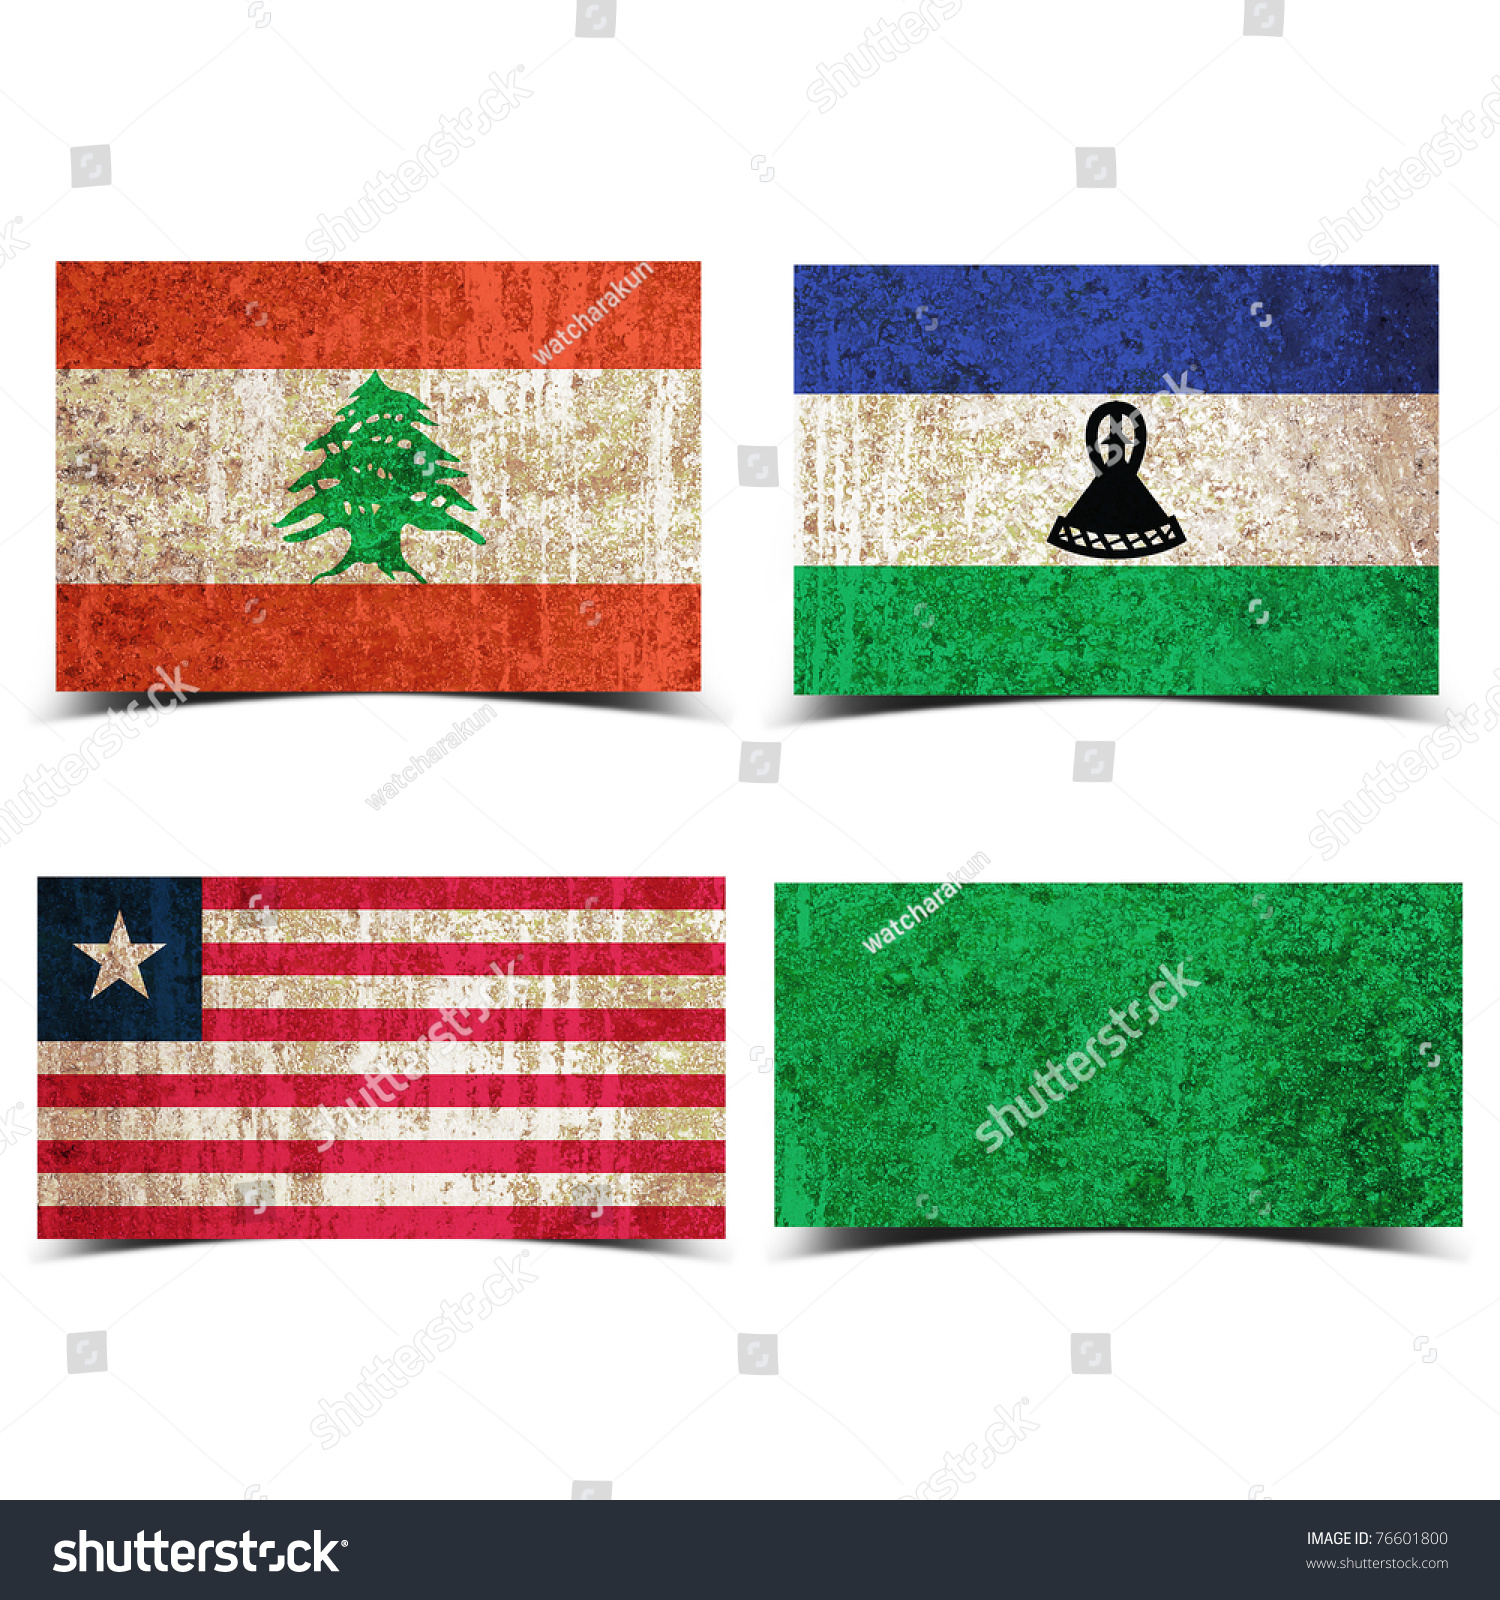 Country Flag Grunge Old Rusty Paper Stock Photo (Safe to Use ...